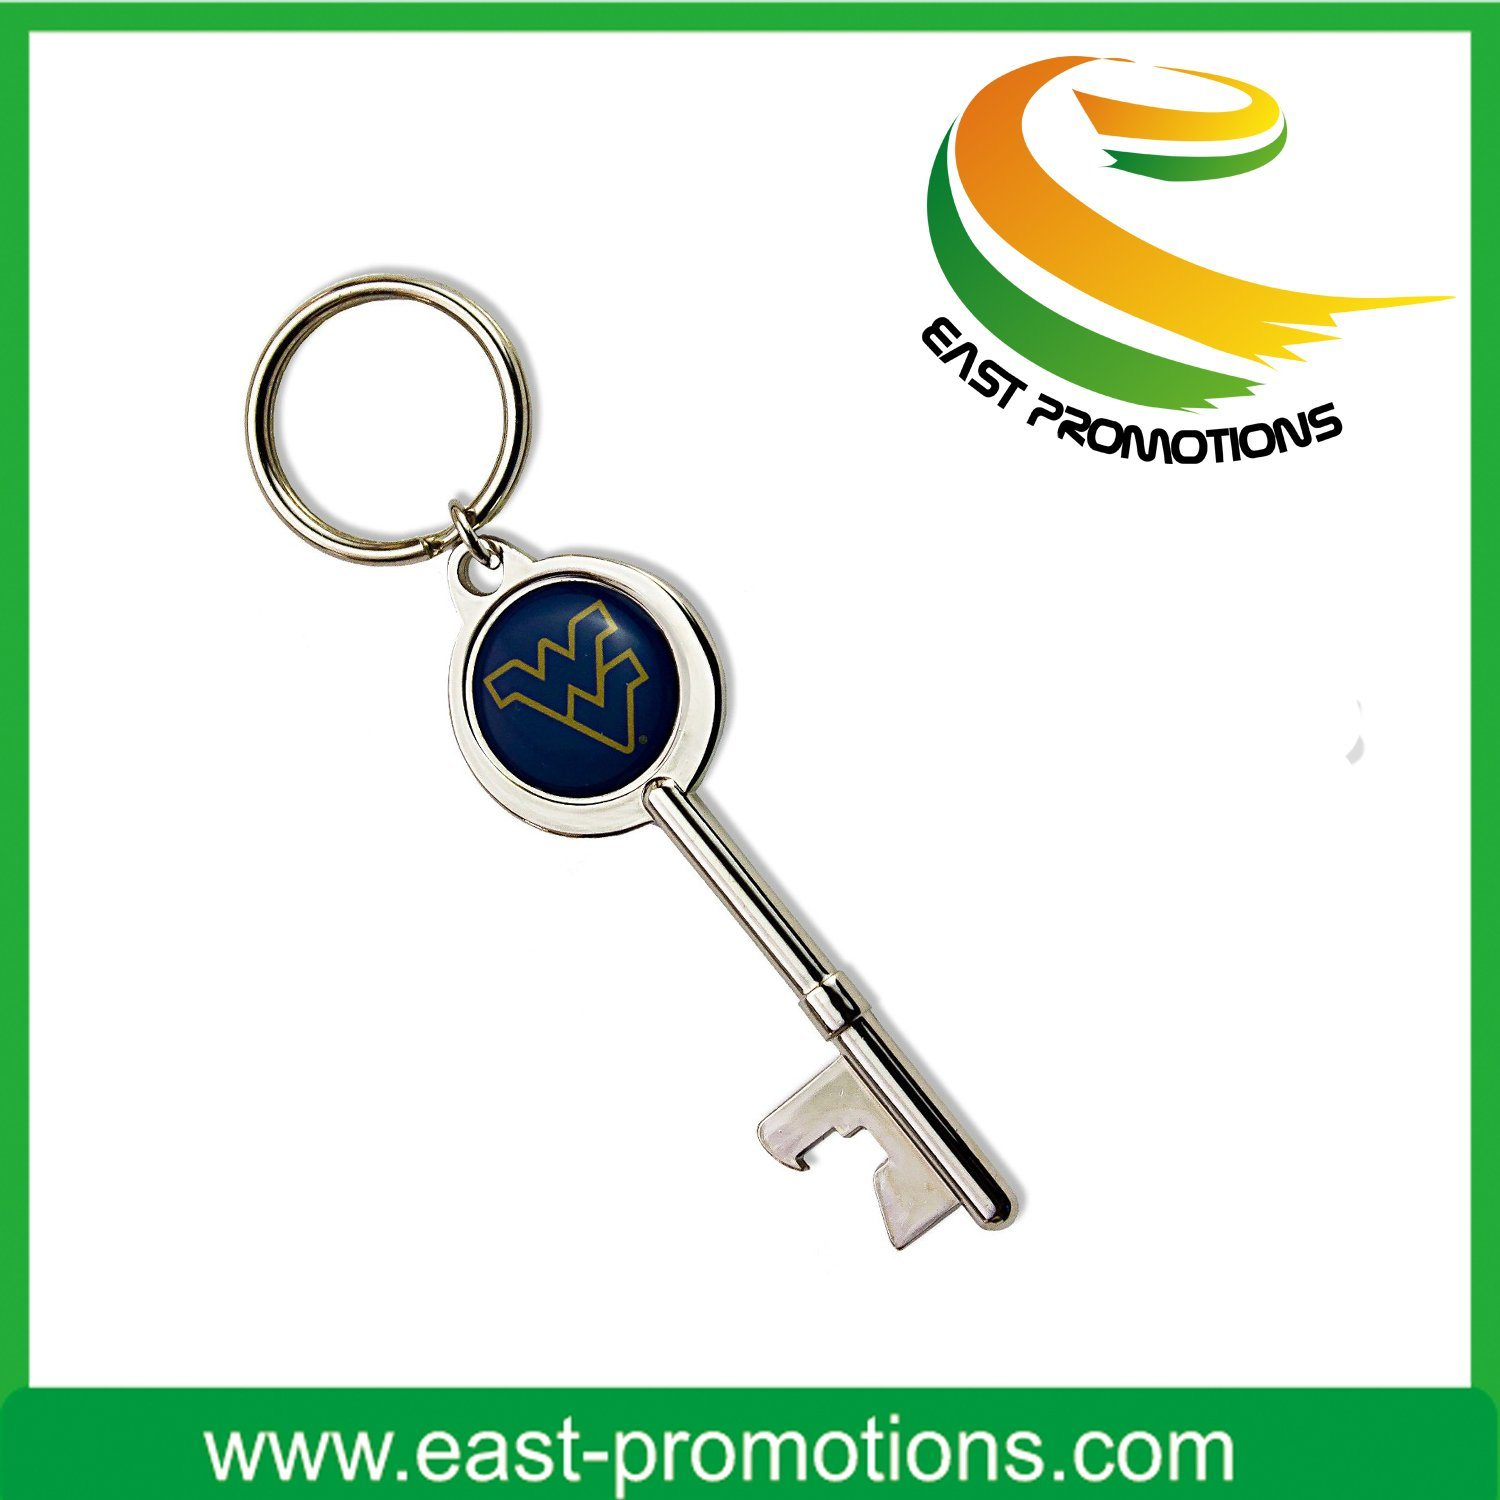 Promotional Bottle Opener with Cheapest Price